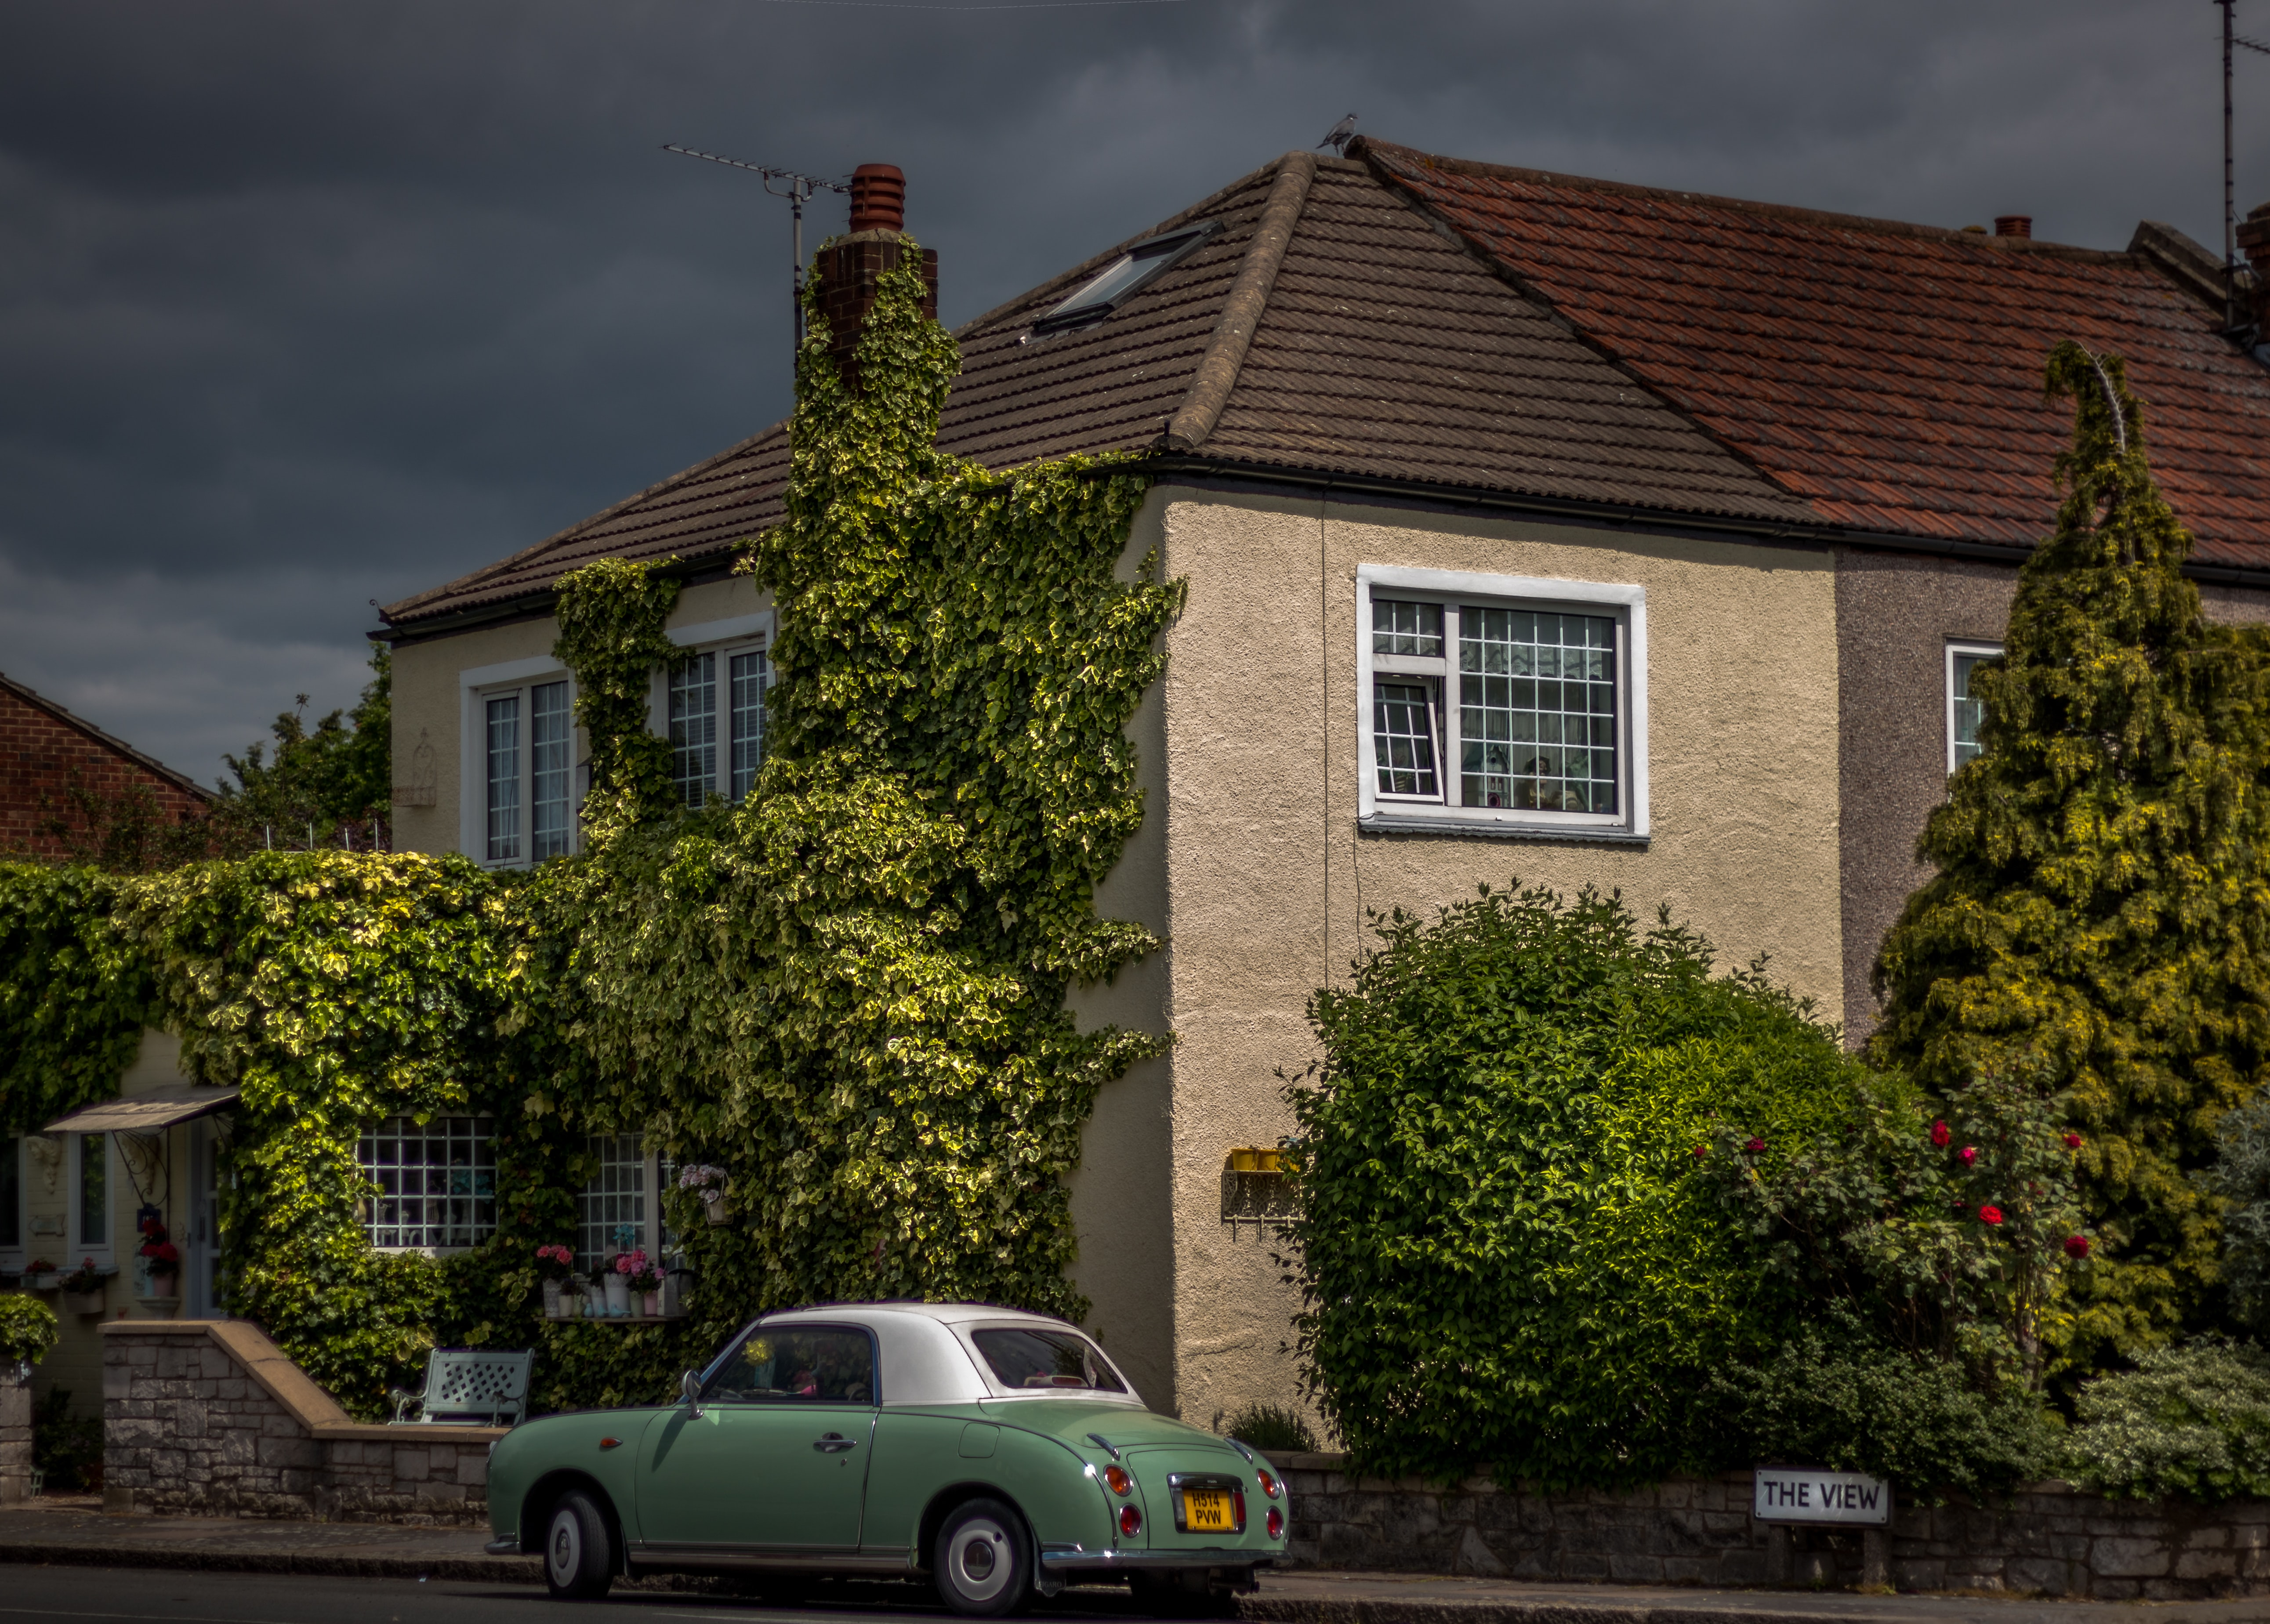 Old vintage car parked in front of the ivy-covered residential house in London